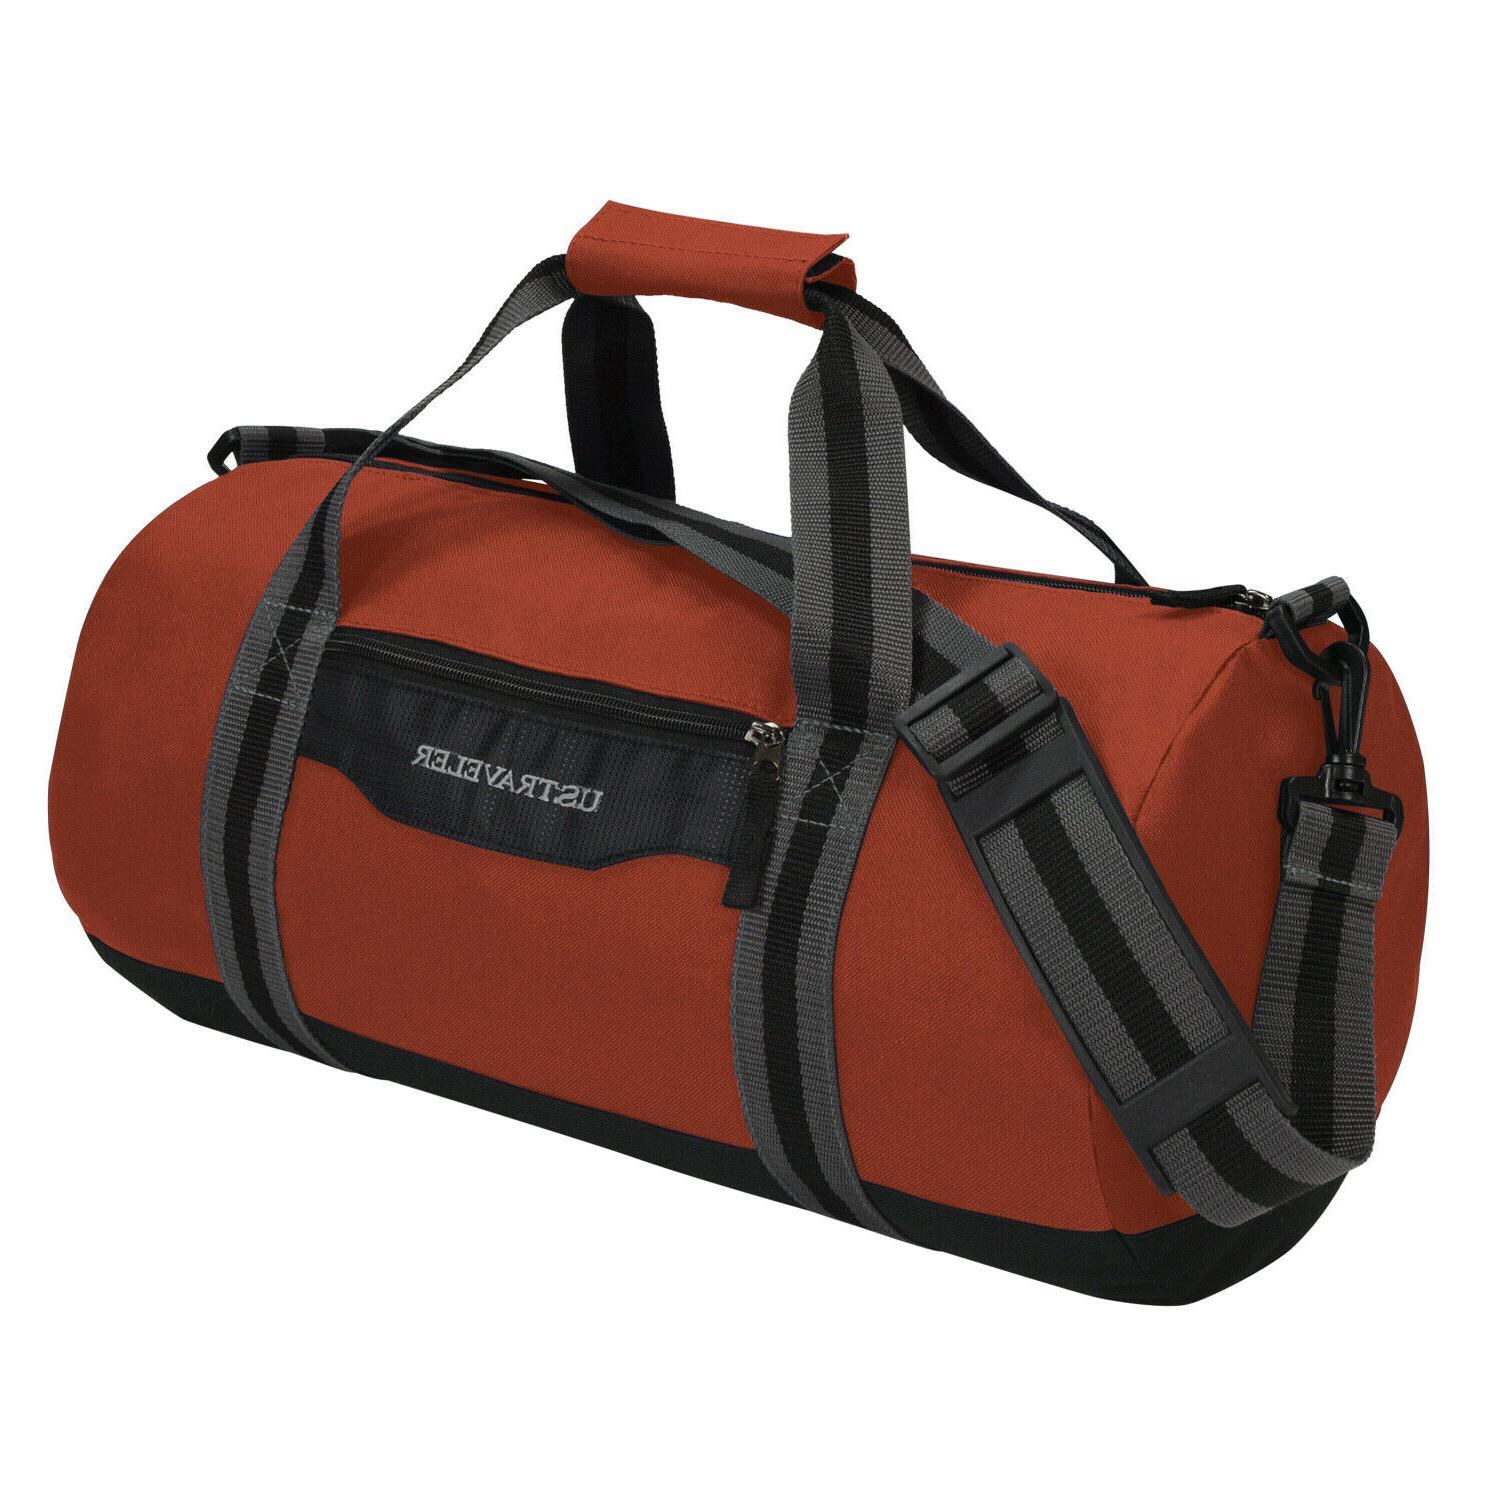 2-Piece Carry-On Rolling & Set